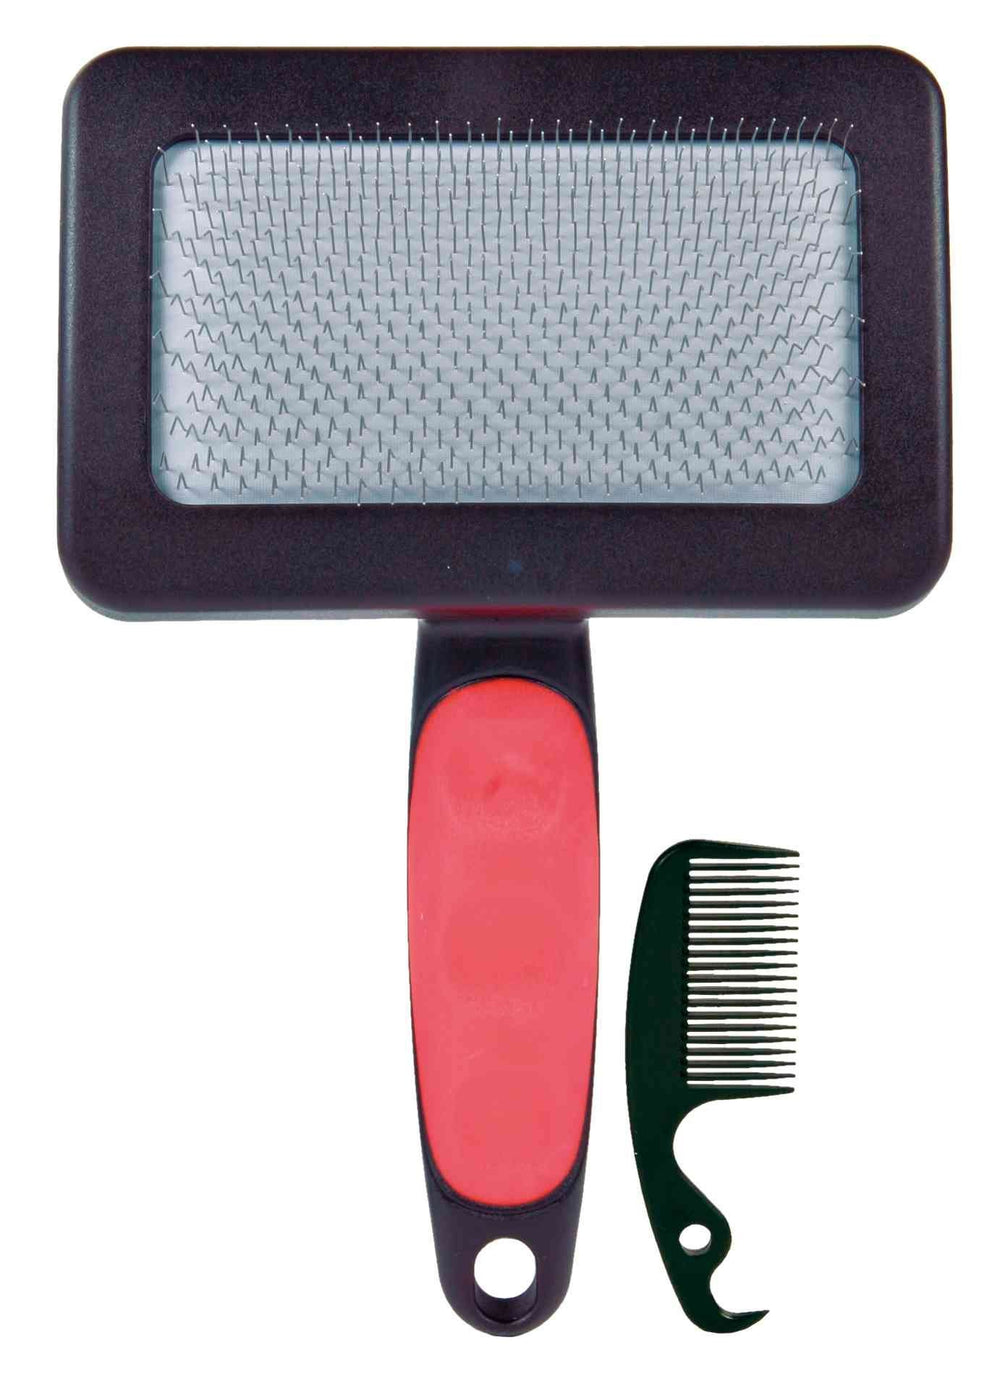 Soft Slicker Brush - ABK Grooming Brush Dog,Brush For Dog Hair,Slicker Brush,Cat Brush,Dogs Grooming Brush,Dog Slicker Brush,Grooming Brush,Pet Brush,Cat Grooming Brush,Pet Grooming Brushes,Deshedding Dog Brush,Andis Slicker Brush,Dog Brush For Pugs,Andis Dog Brush